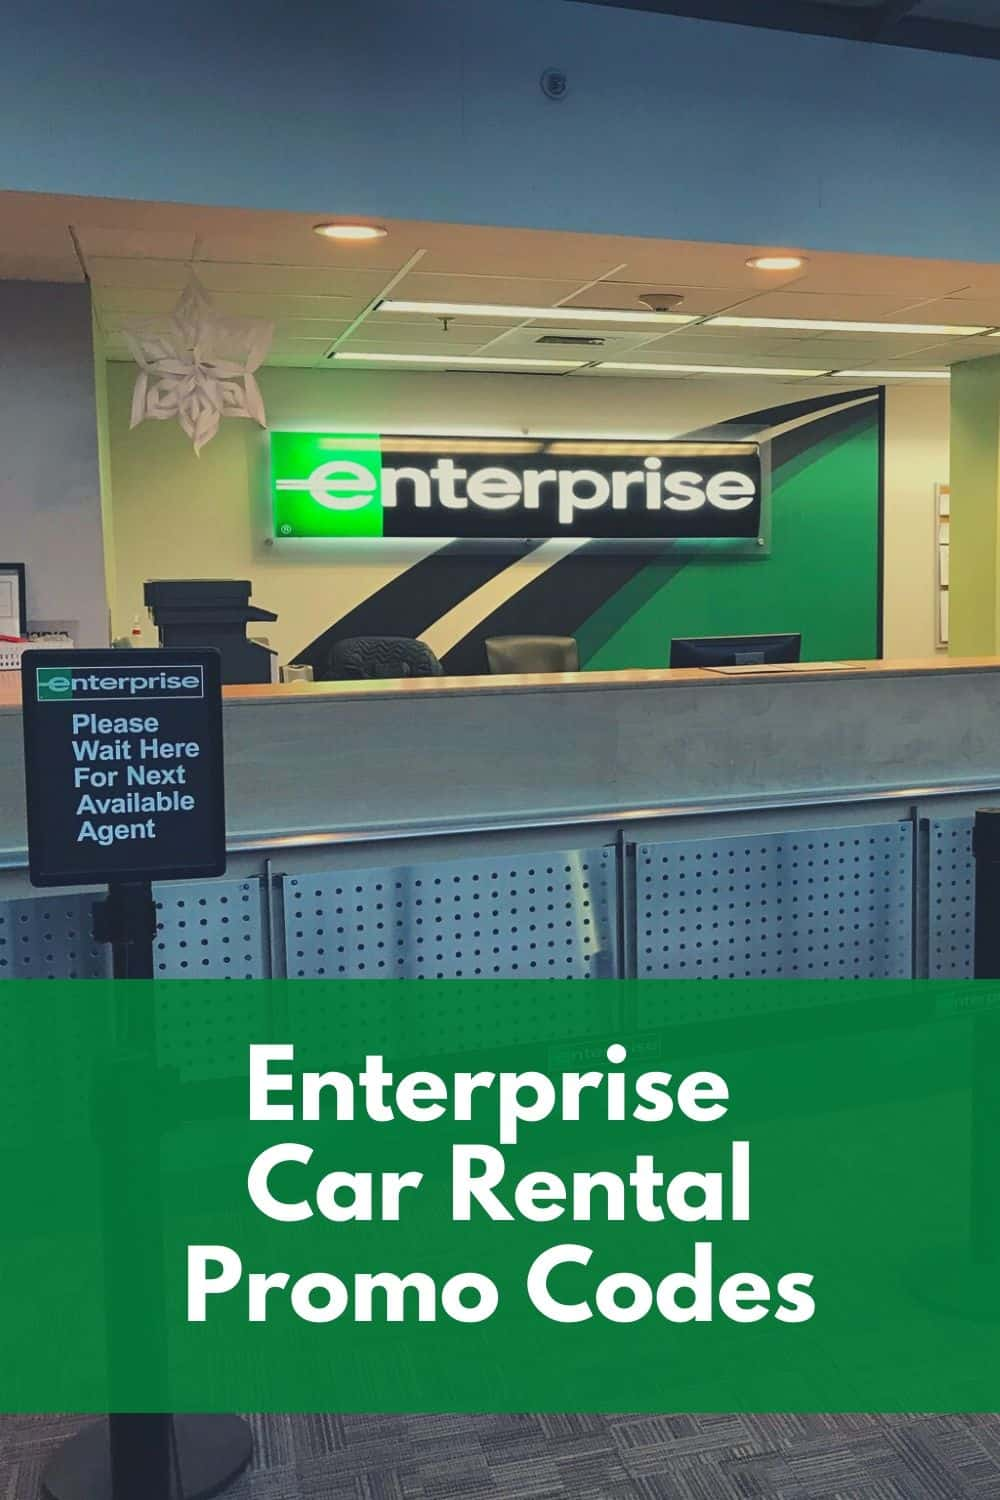 Best Enterprise Promo Code and Coupon Codes for Car Rentals in 2020